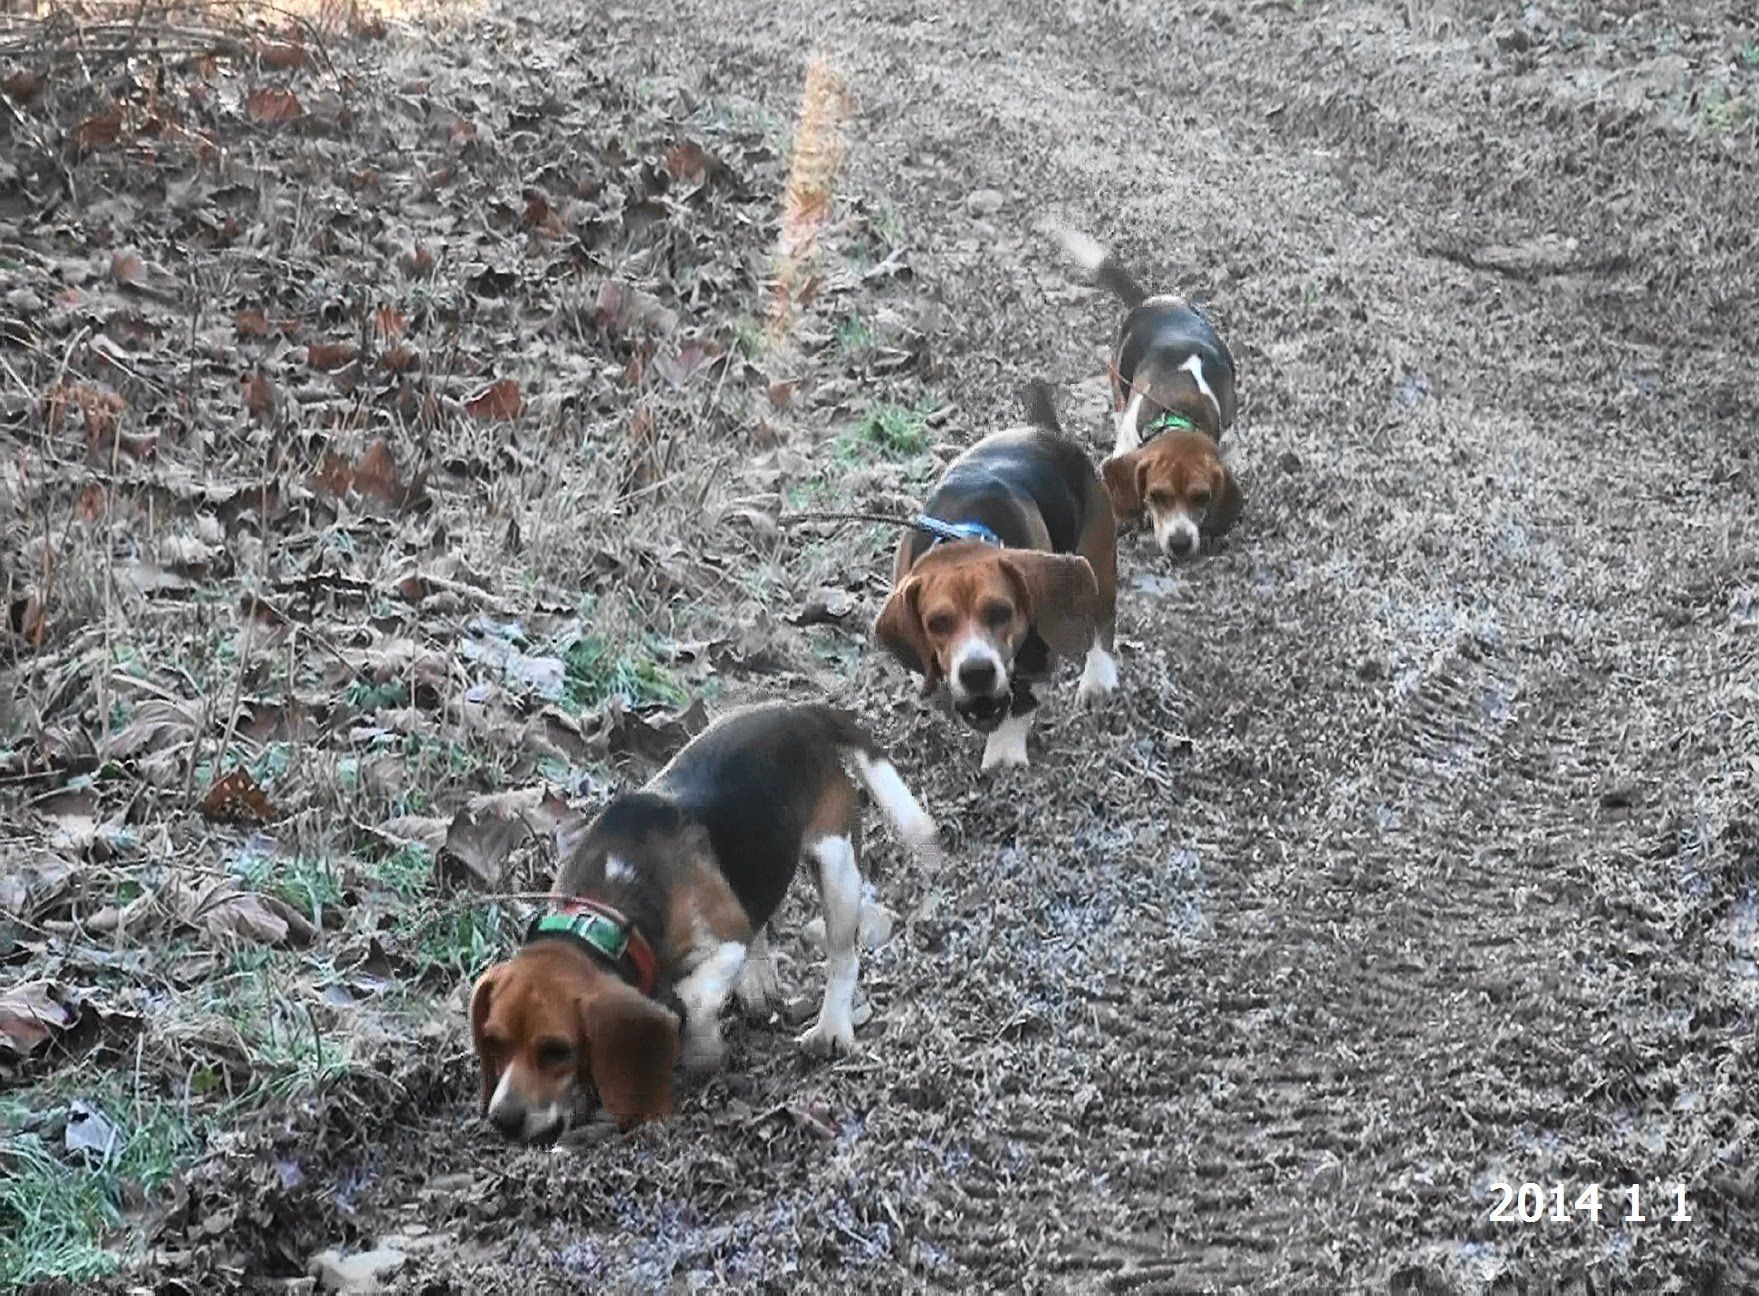 Skyview S Beagles Rabbit Hunting With Ron Asbury Ranger Drake